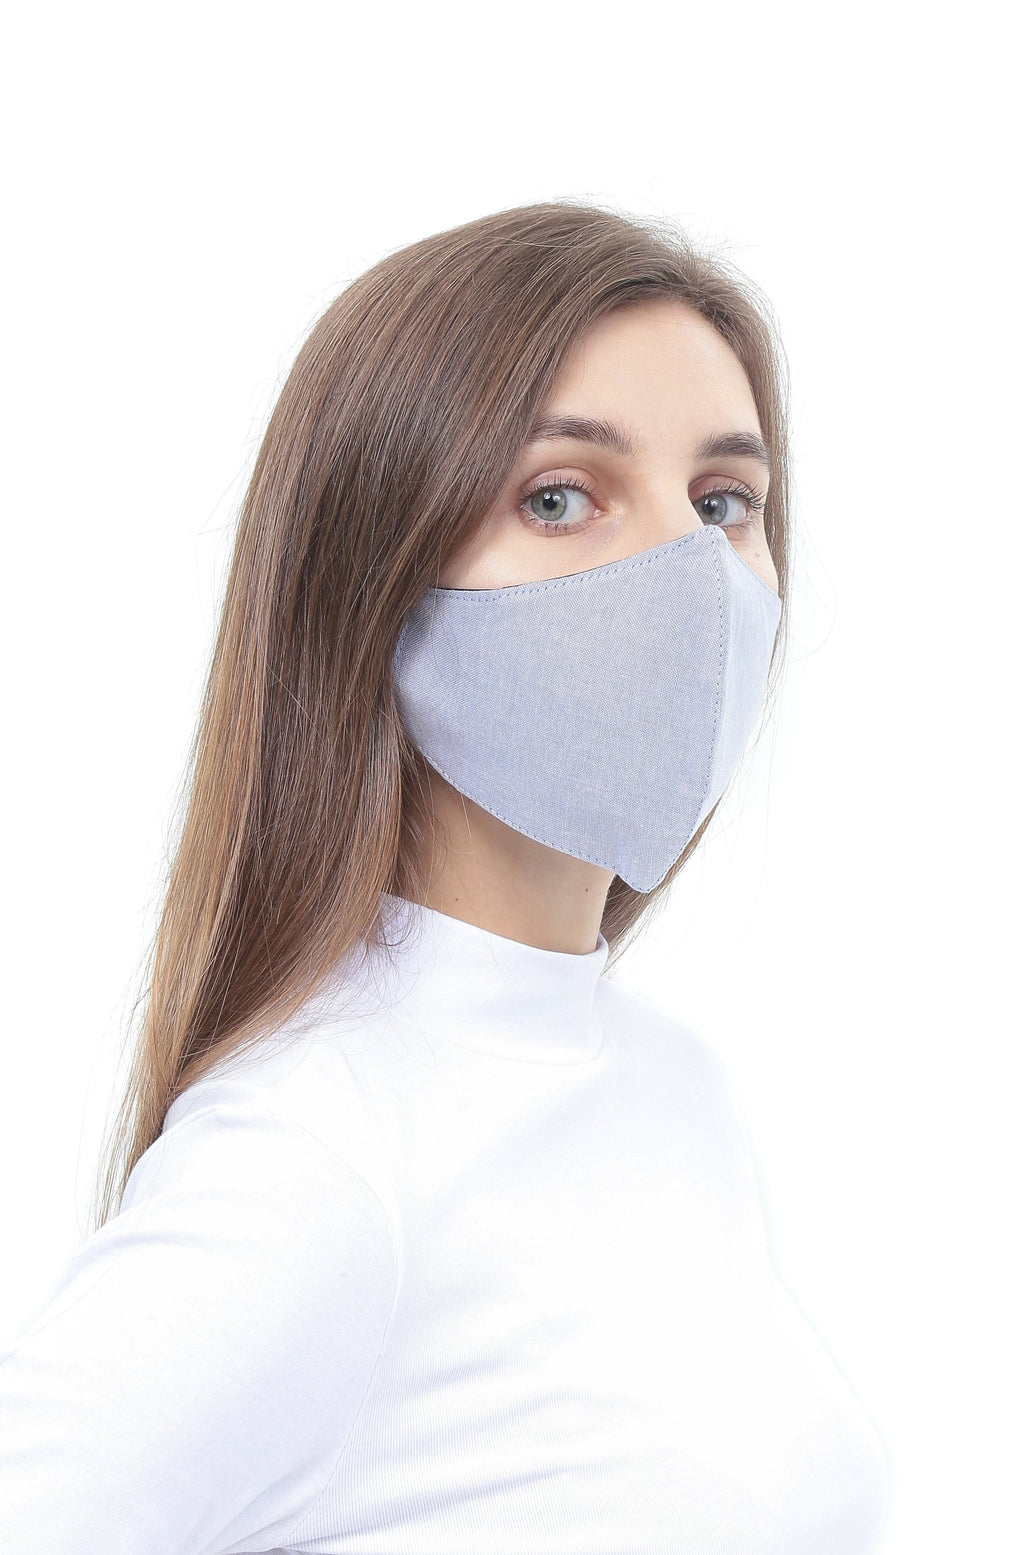 3BULBS Reusable Face Mask in Light Grey (Single/3 Filters)